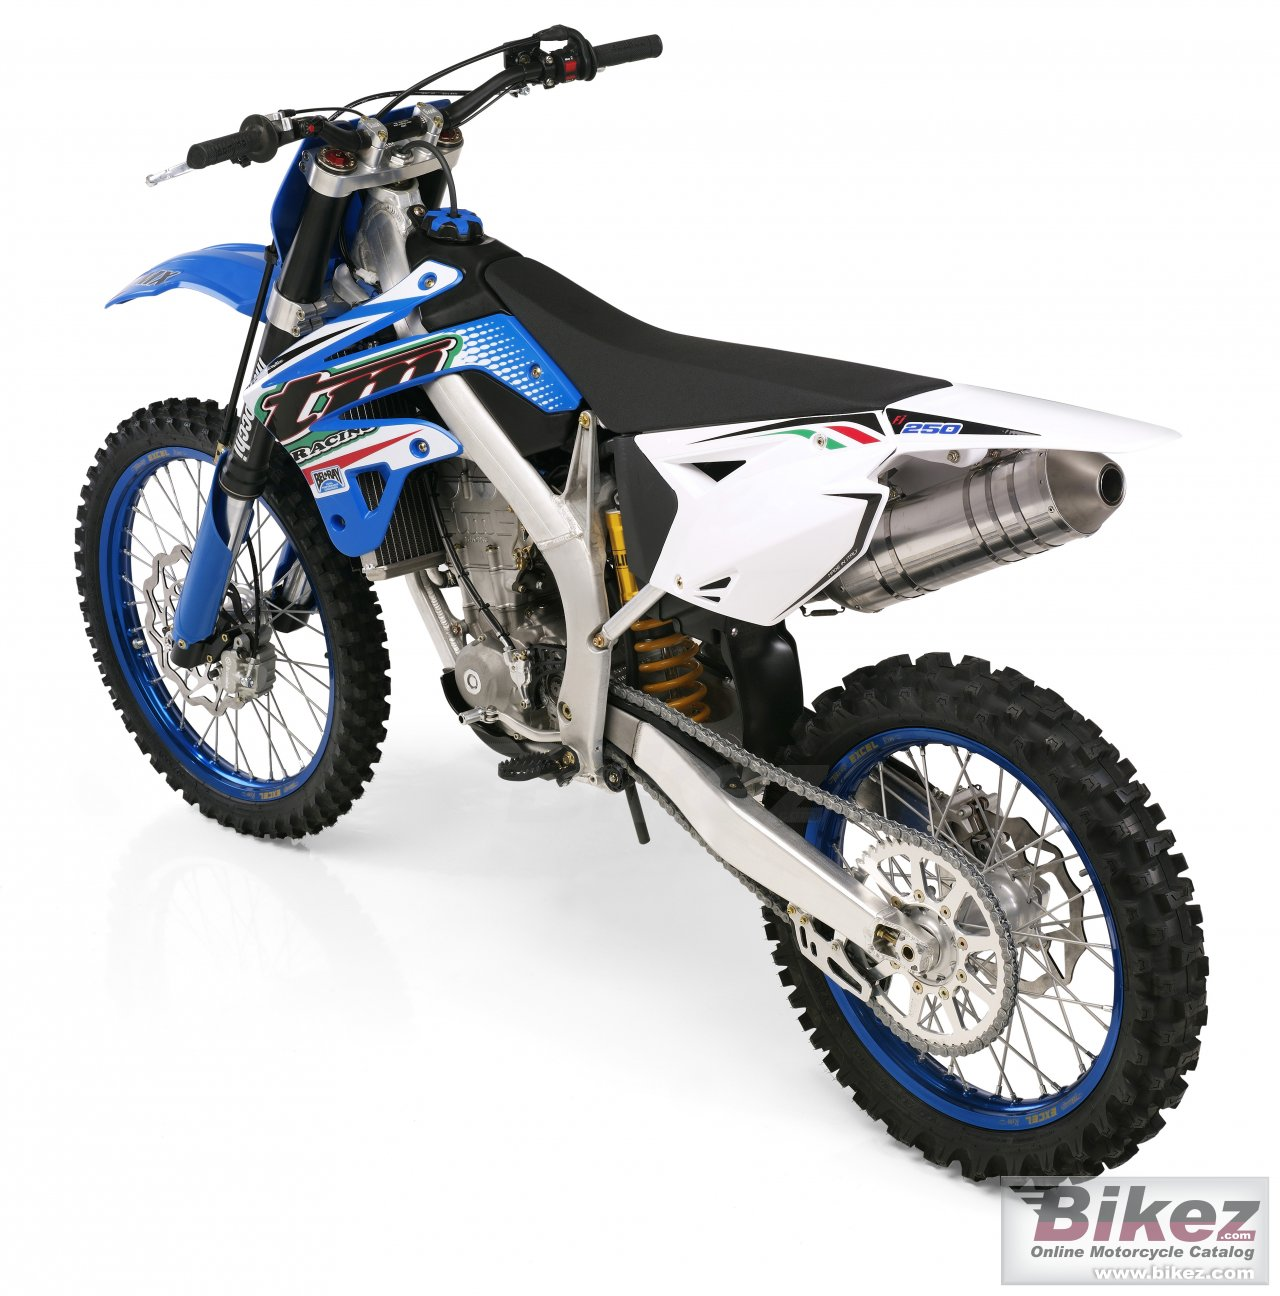 Big TM racing mx 250 fi picture and wallpaper from Bikez.com